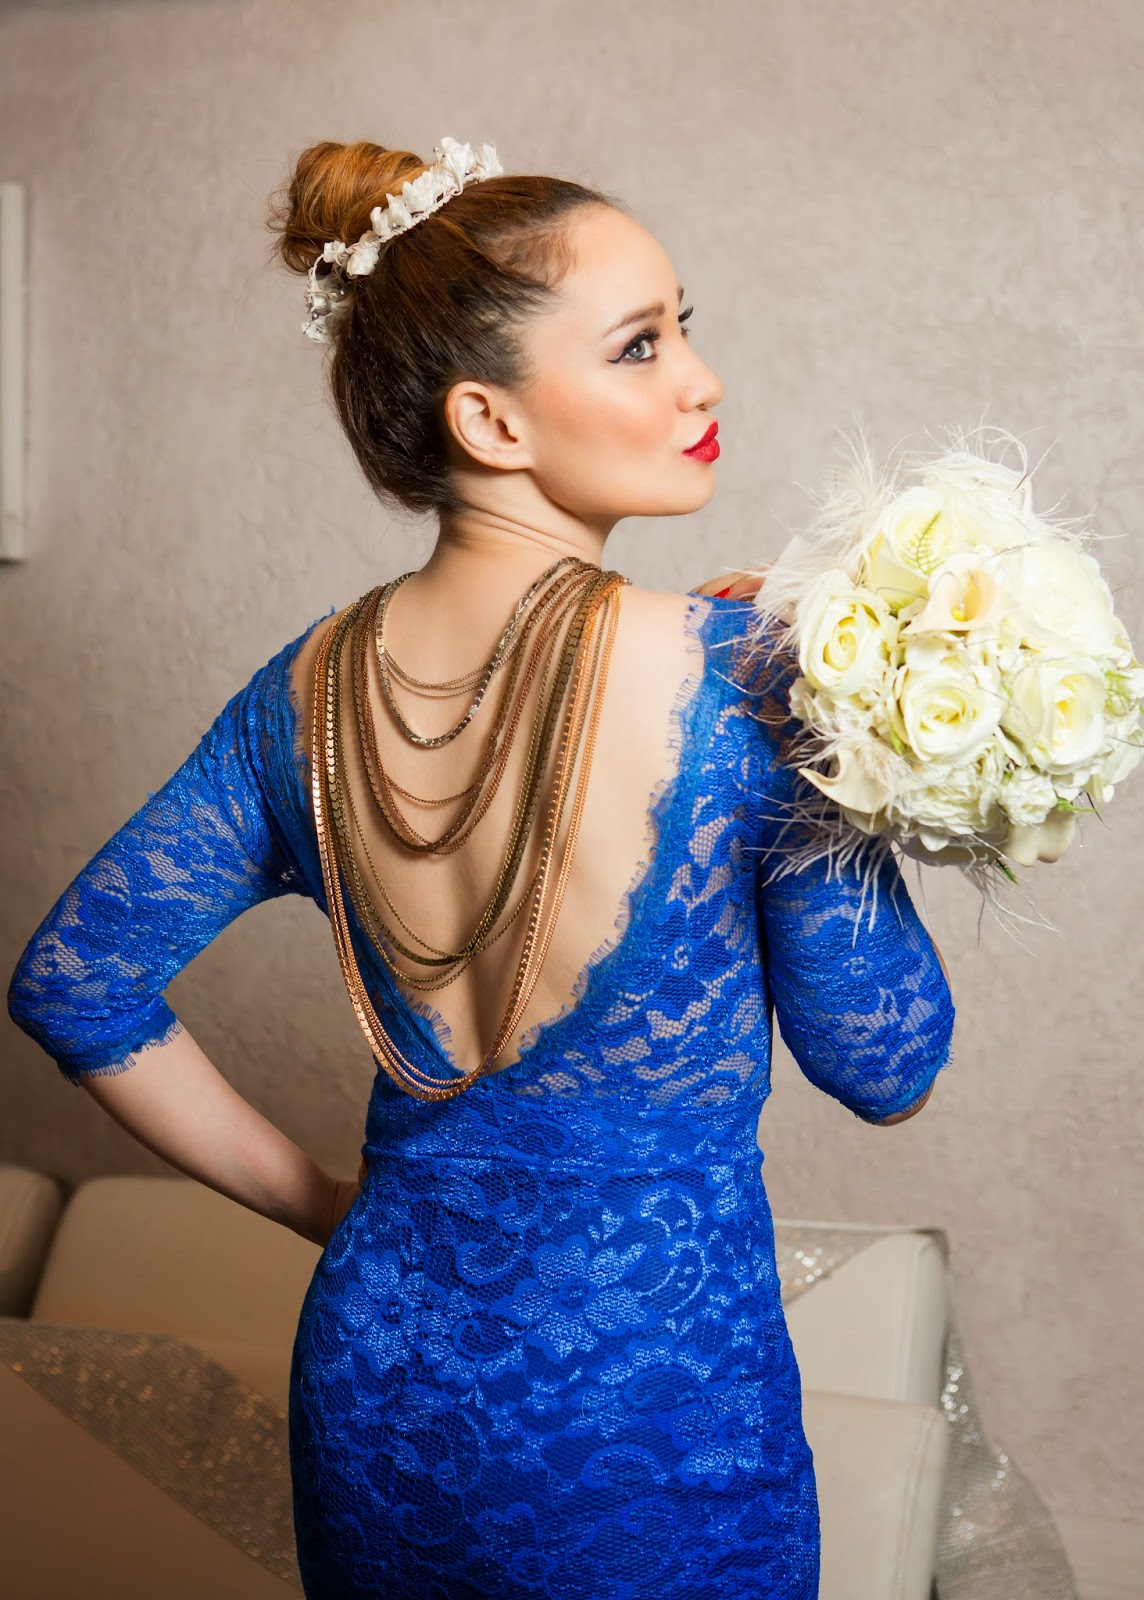 Sheinside Blue Lace Dress with a V back & a Back-Chain